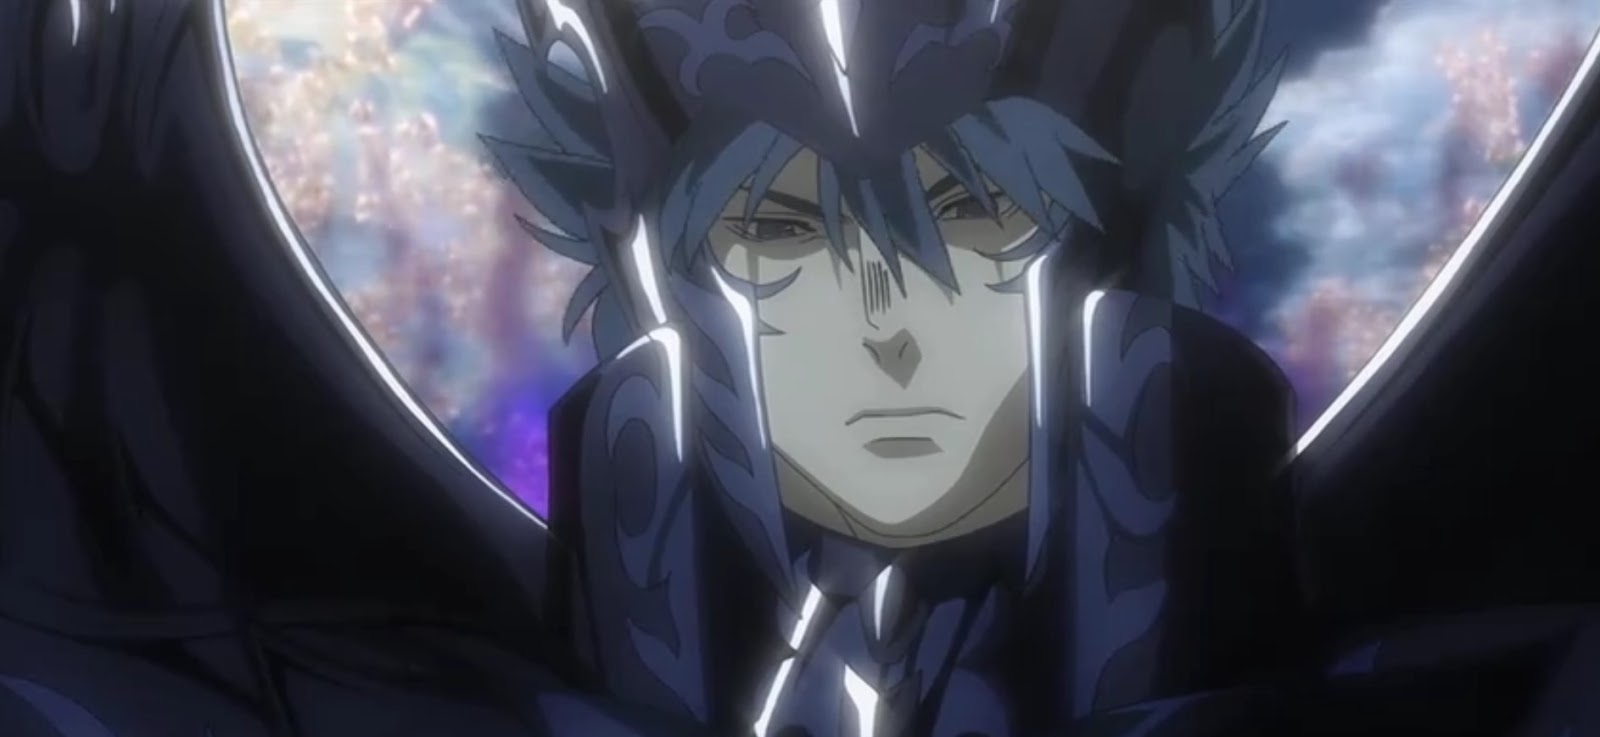 Saint Seiya: The Lost Canvas Episodio 12 Dublado